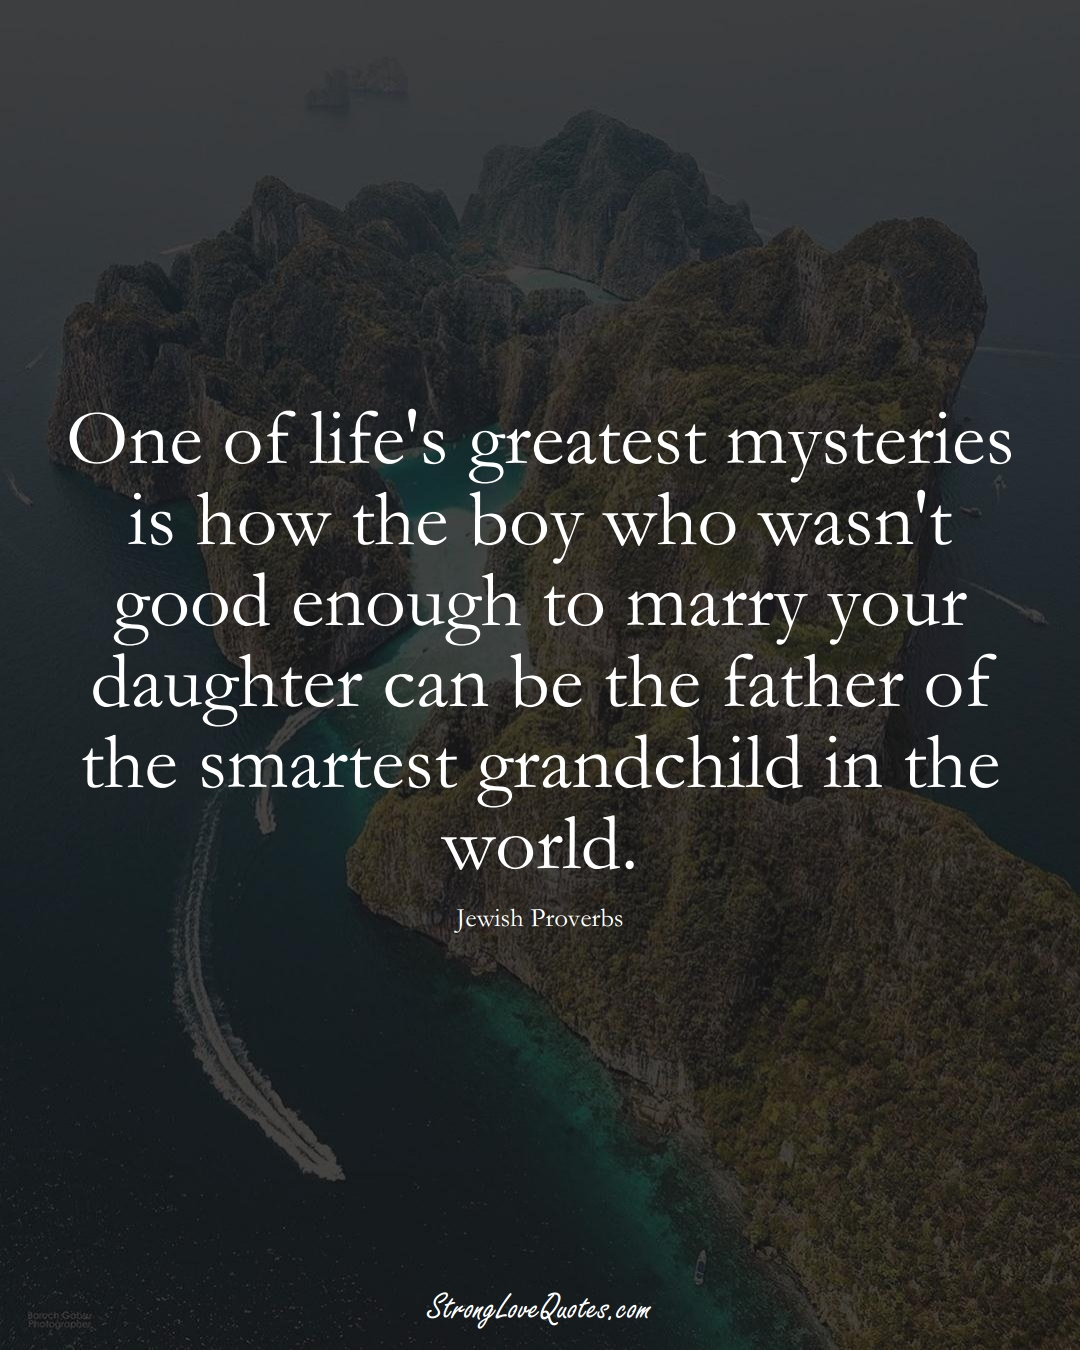 One of life's greatest mysteries is how the boy who wasn't good enough to marry your daughter can be the father of the smartest grandchild in the world. (Jewish Sayings);  #aVarietyofCulturesSayings